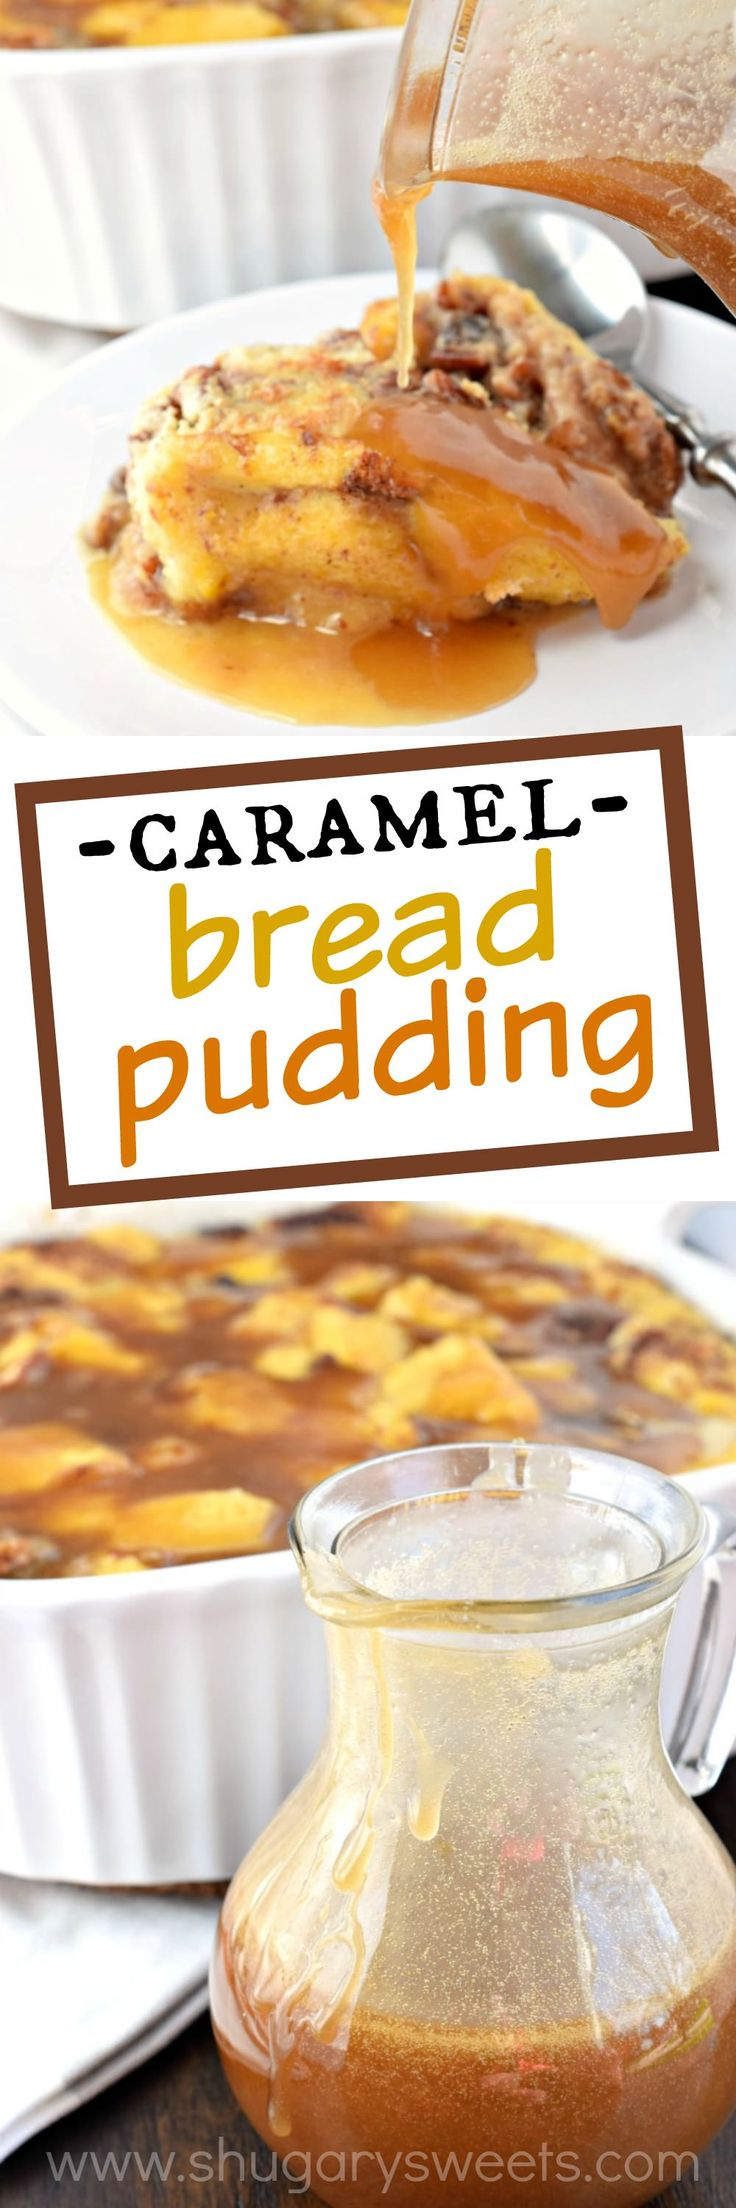 Caramel Bread Pudding has a perfect custard pudding center with a crisp outer crust! Packed with flavor and topped with caramel sauce, this is the dessert you've been craving! #FisherUnshelled